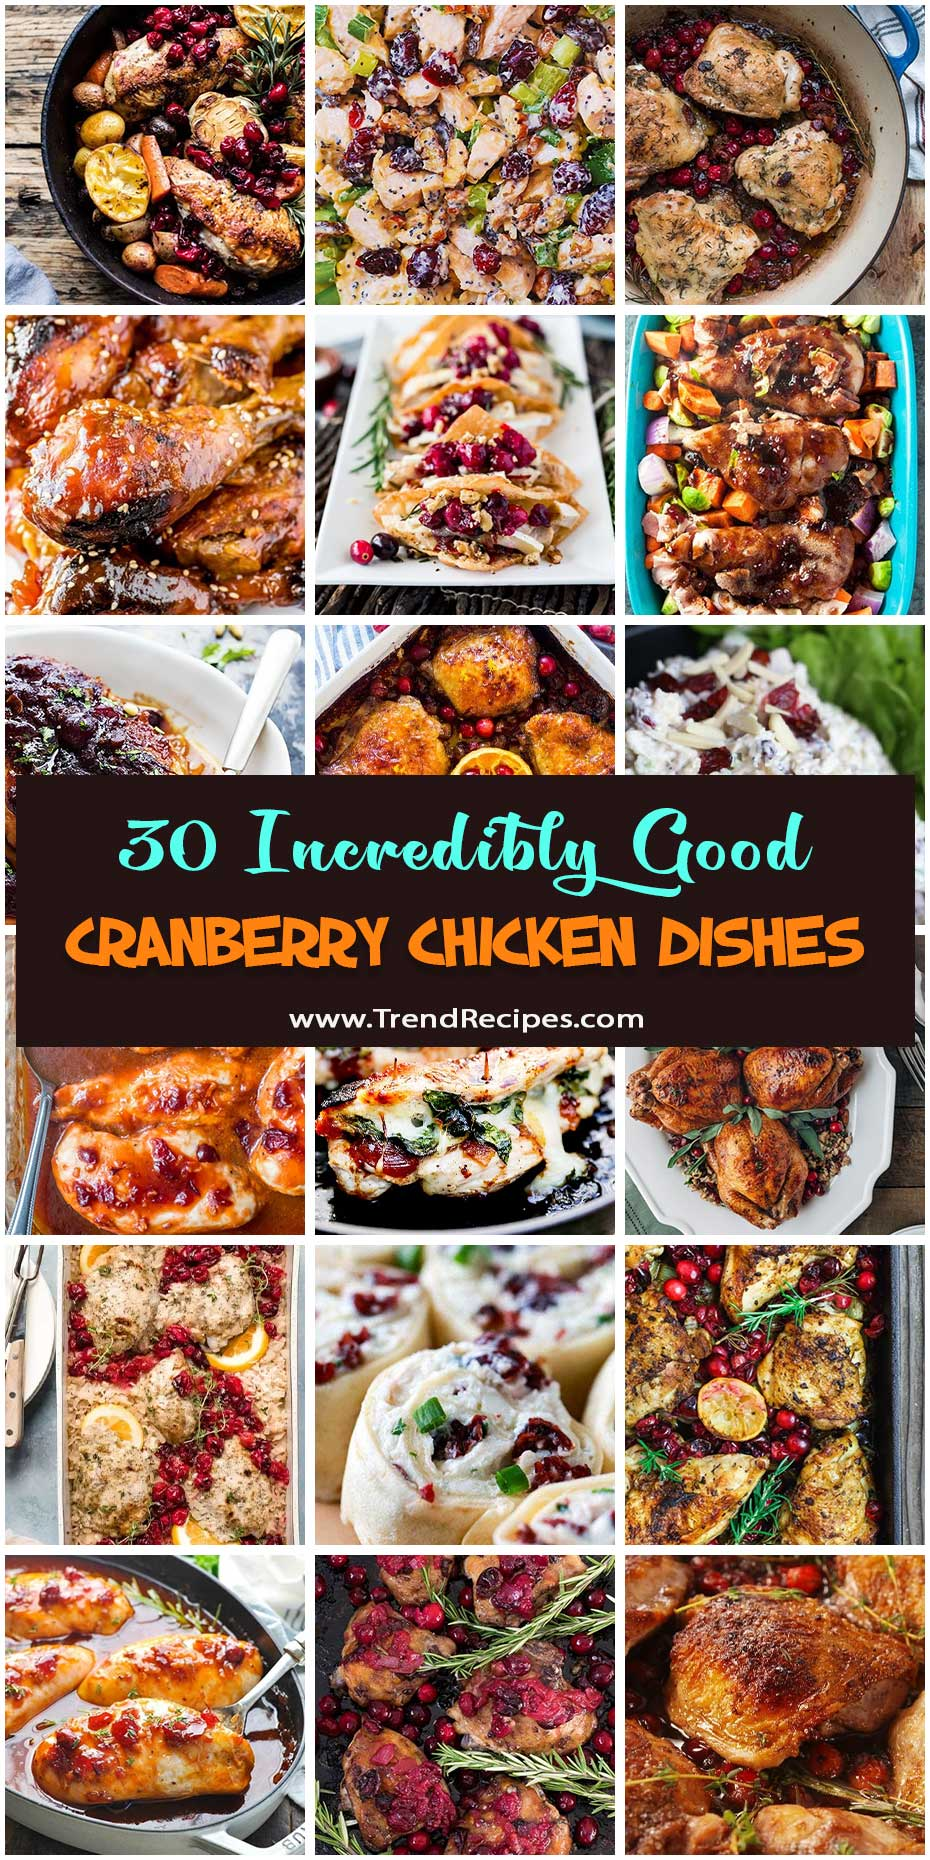 30 Ridiculously Delicious Cranberry Chicken Dishes